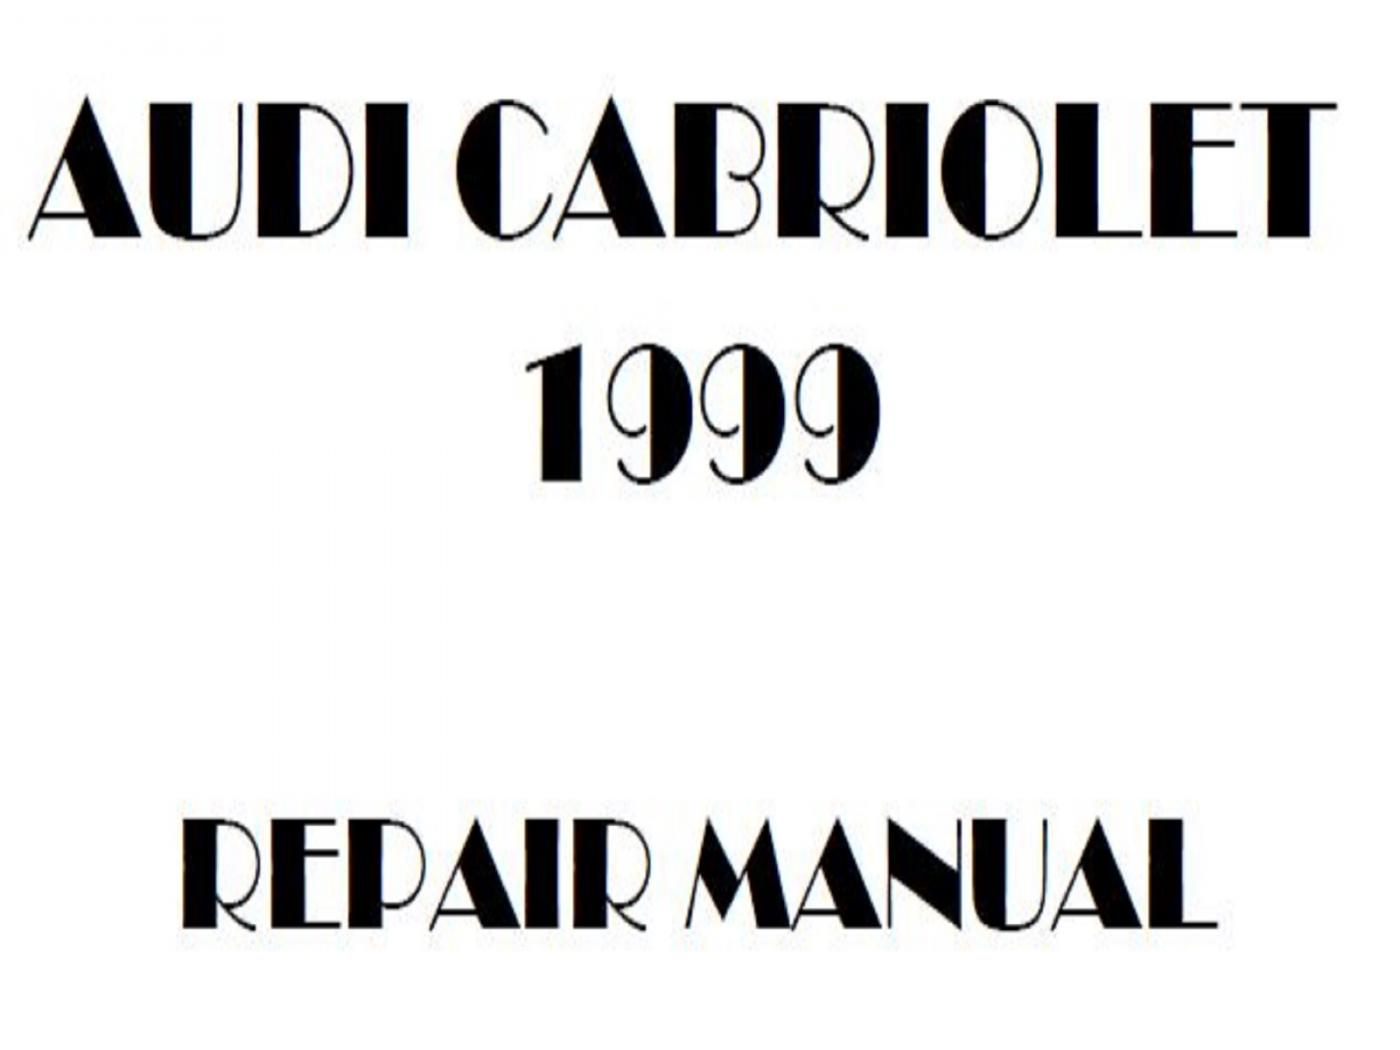 1999 Audi Cabriolet repair manual